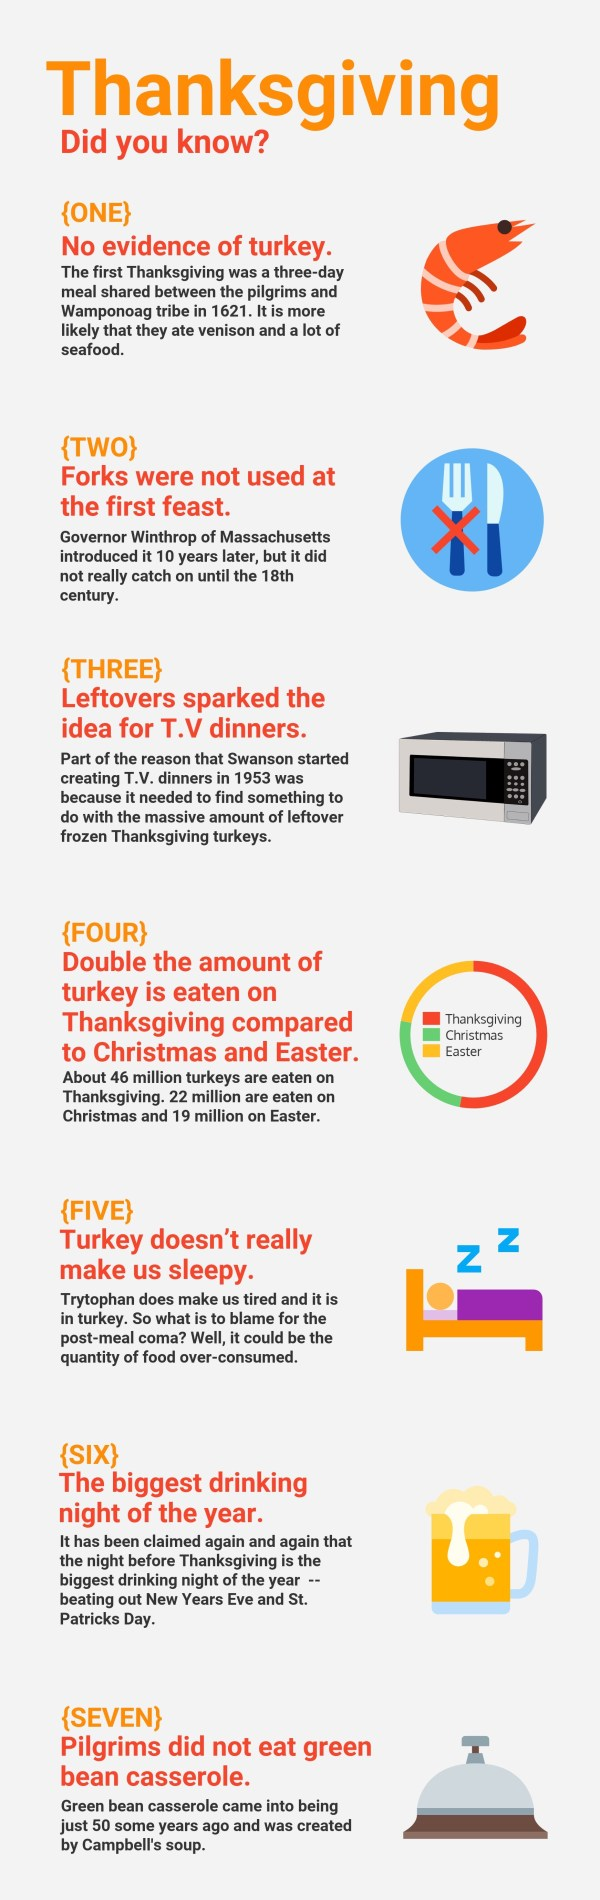 Some Fun Facts About Thanksgiving